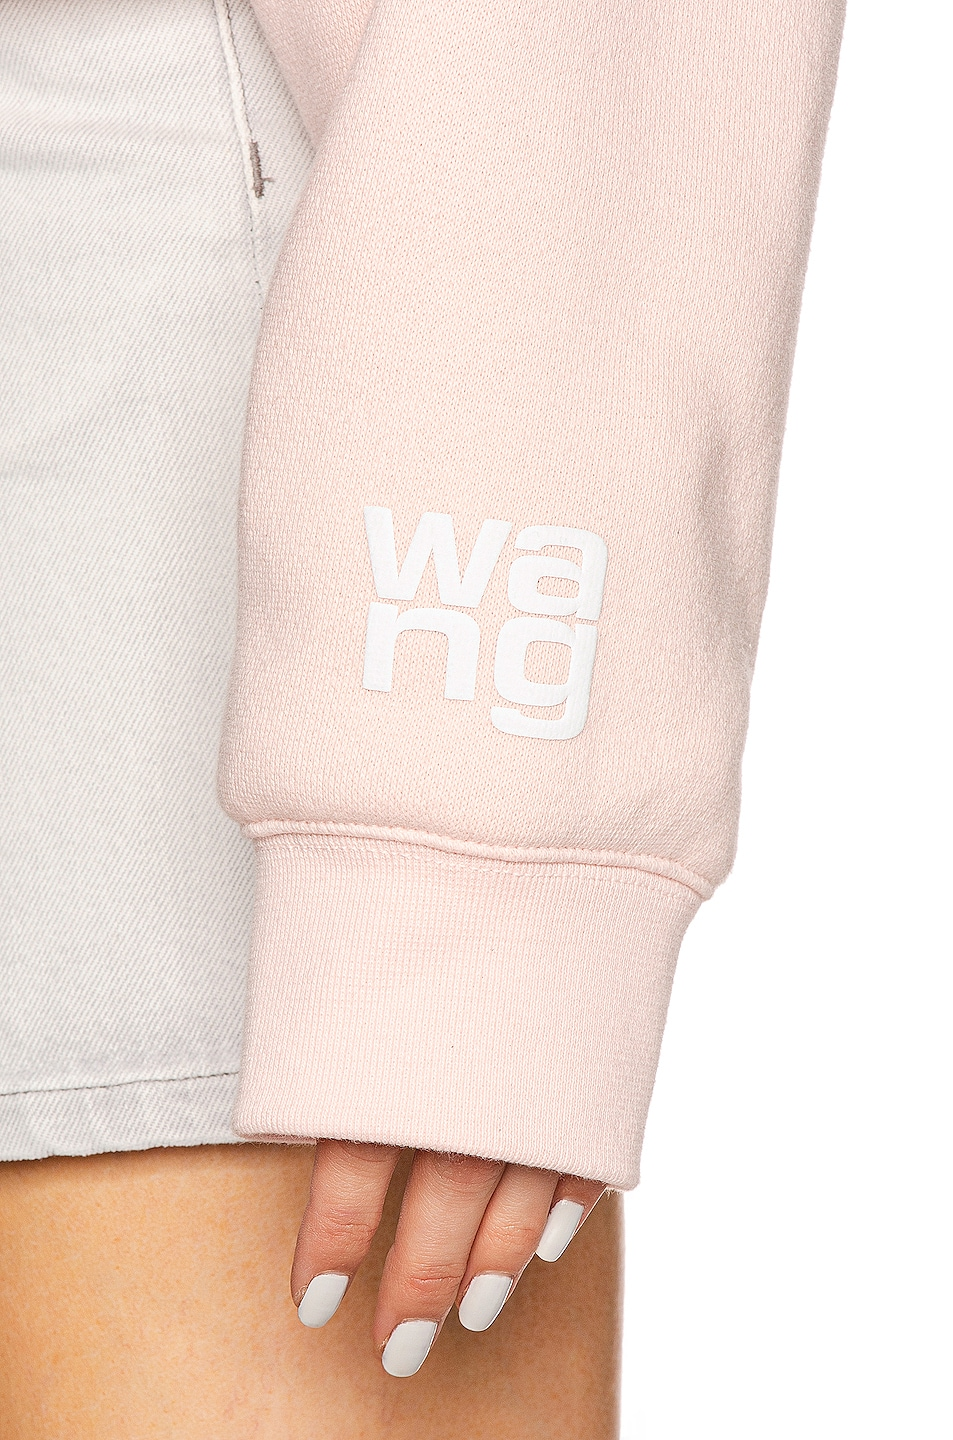 Image 6 of T by Alexander Wang Puff Paint Bubble Hoodie in Light Melon